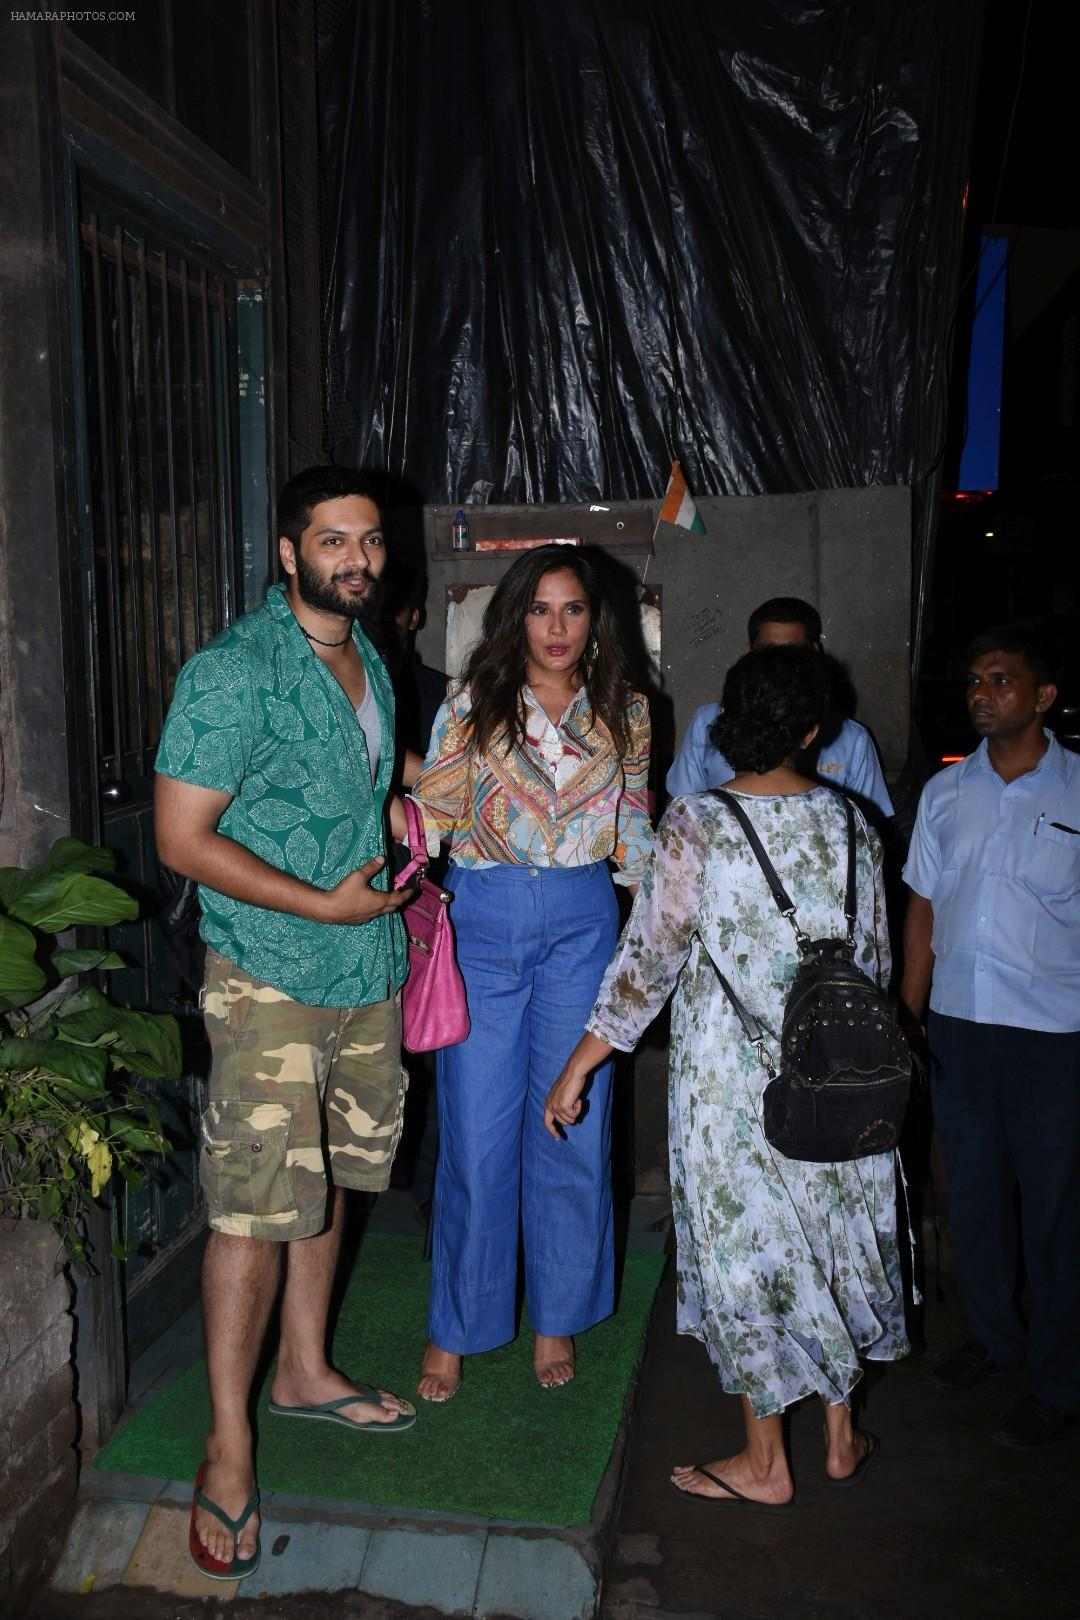 Richa Chadda, Ali Fazal spotted at pali village cafe in bandra on 7th July 2019